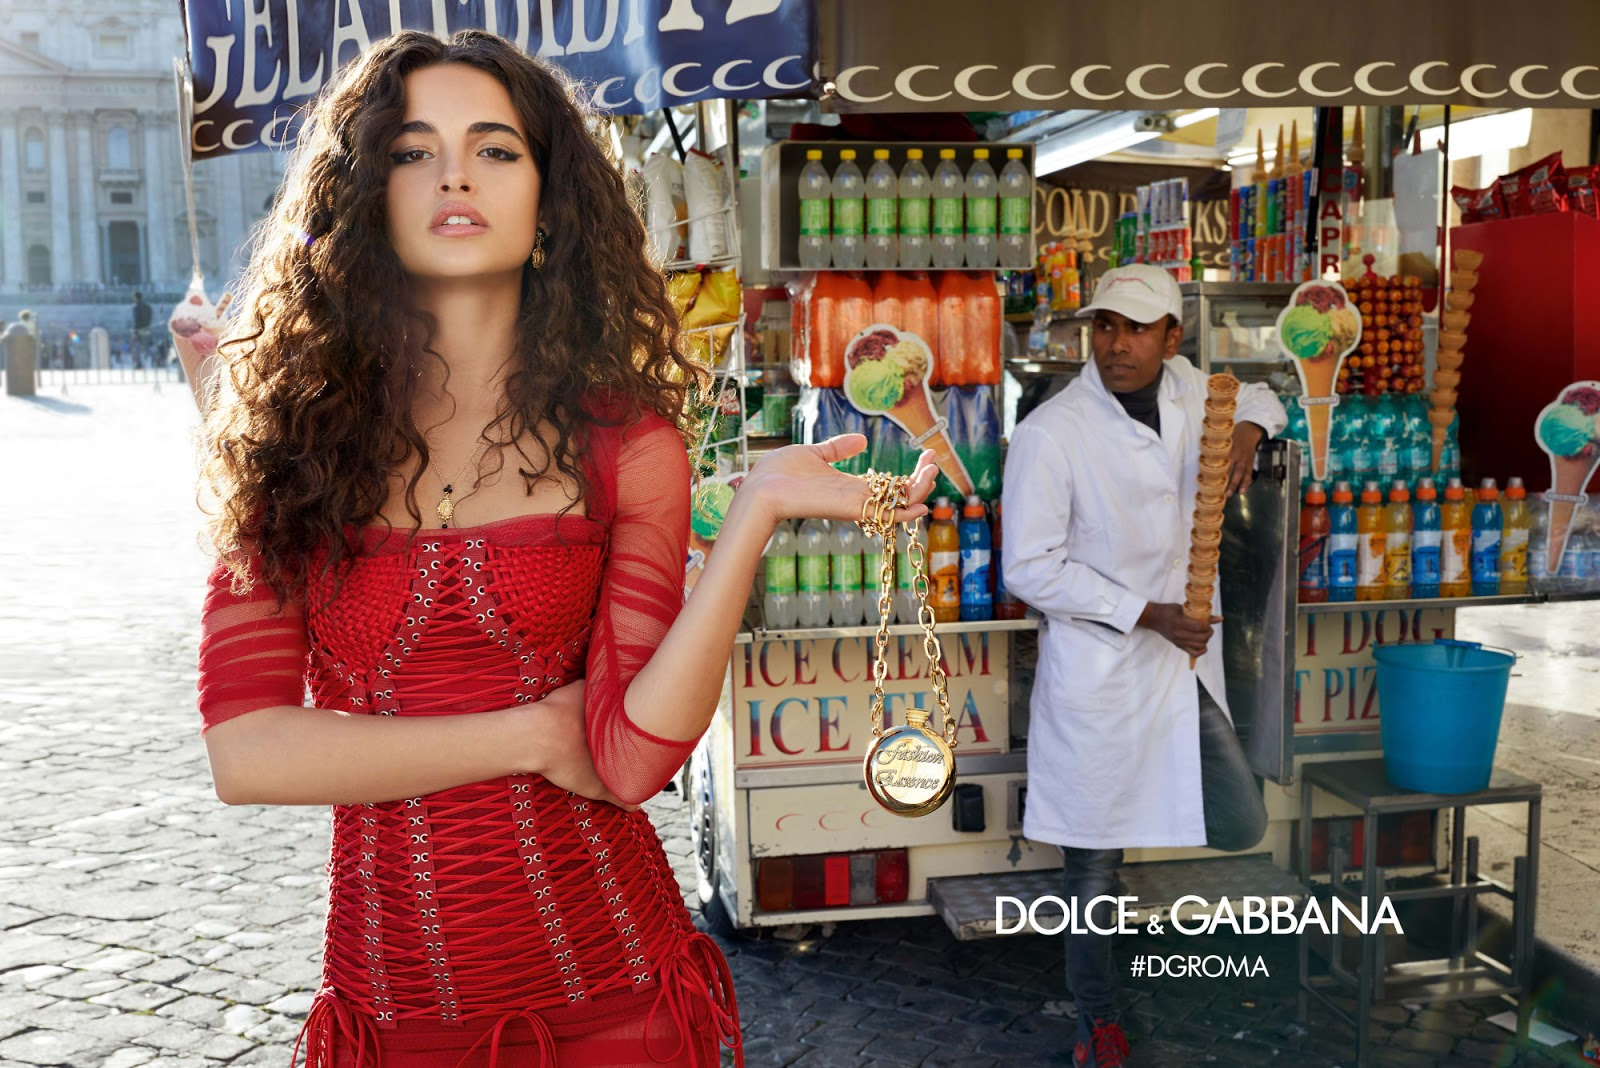 aeb0c3a733 Dolce & Gabbana's Latest Campaign features Eclectic Mix of Fashion Models,  YouTubers and Kids with